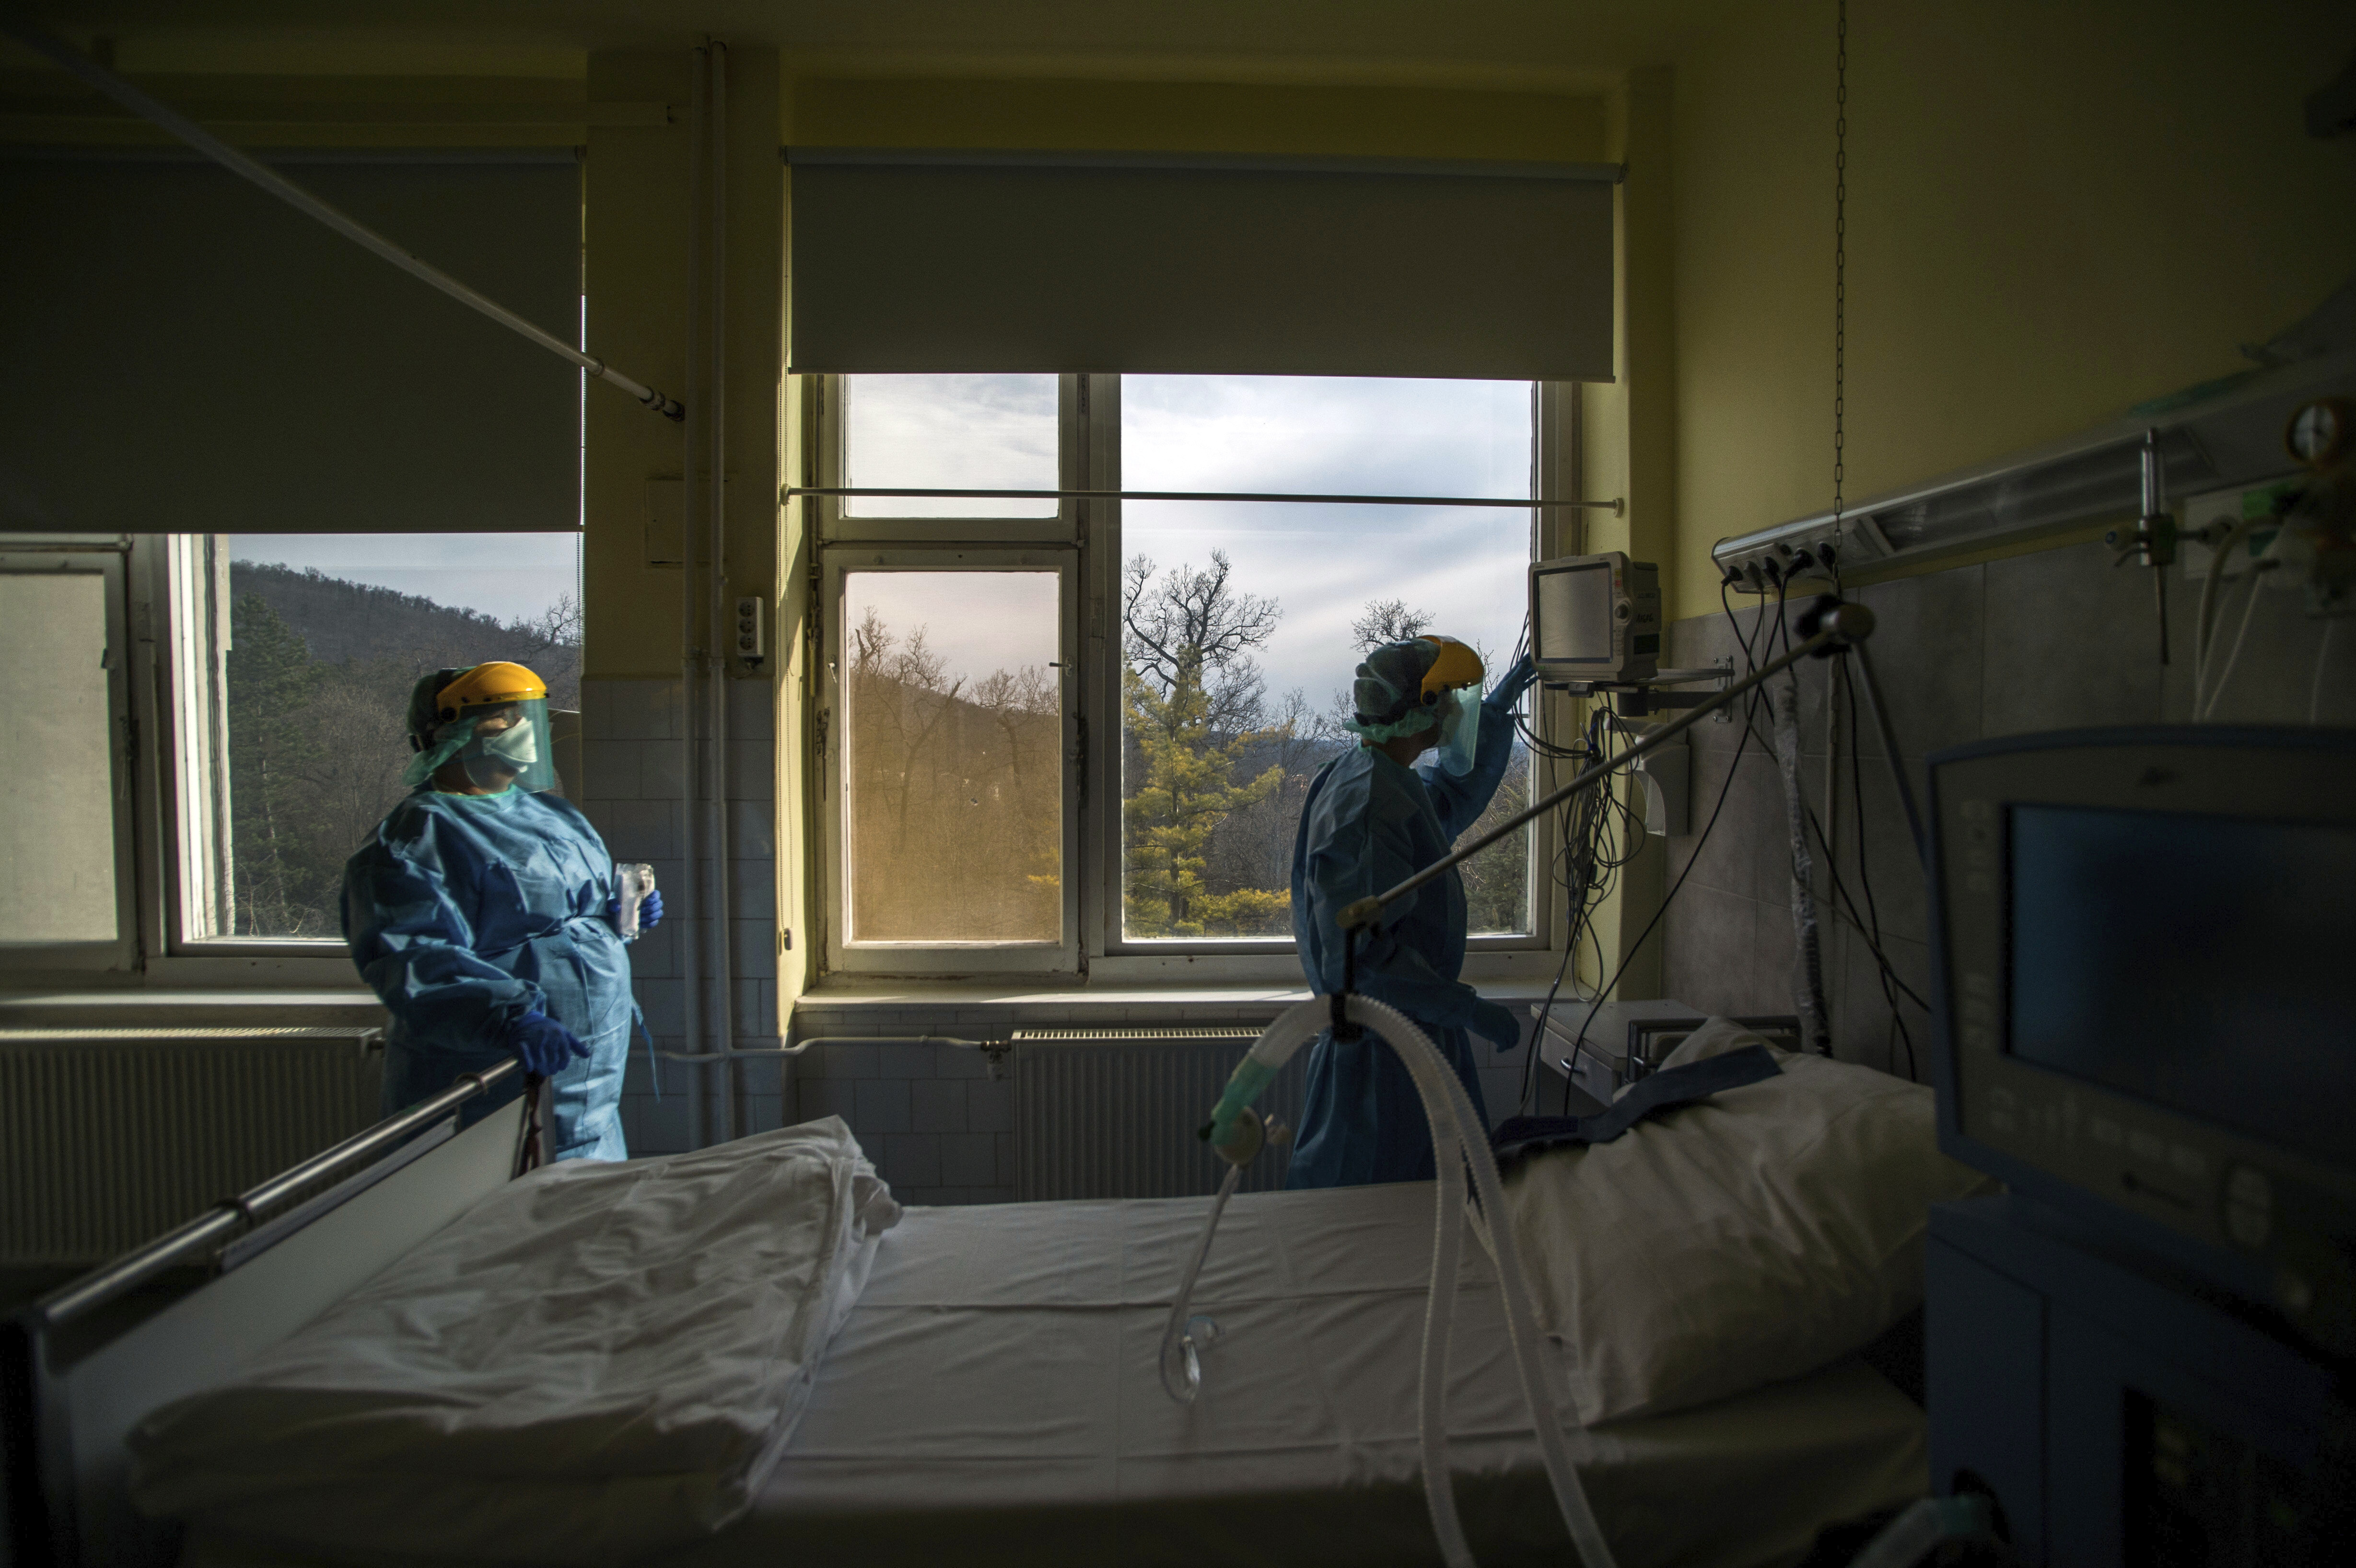 Medical staff members check a ventilator in protective suits at the care unit for the new COVID-19 infected patients inside the Koranyi National Institute of Pulmonology in Budapest on March 24, 2020.